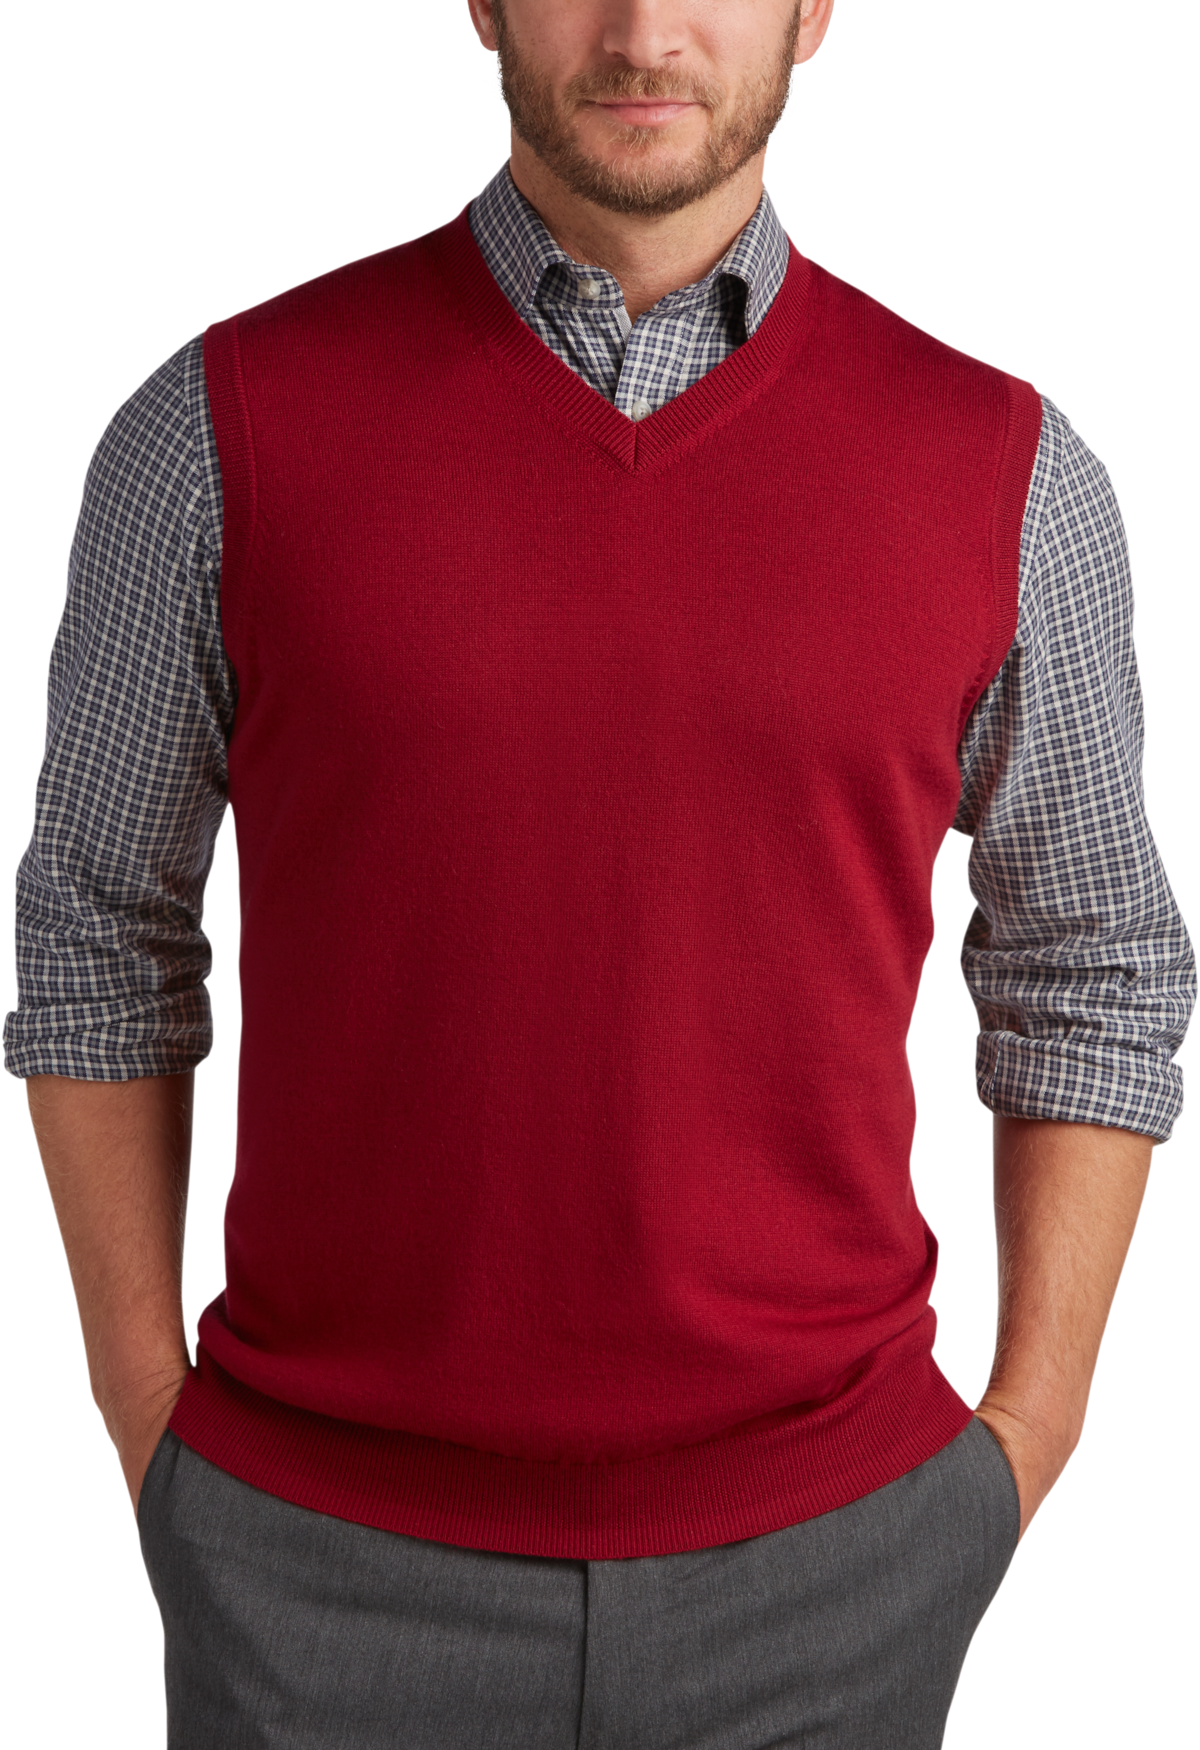 Joseph Abboud Red V-Neck Modern Fit Sweater Vest - Men's | Men's ...